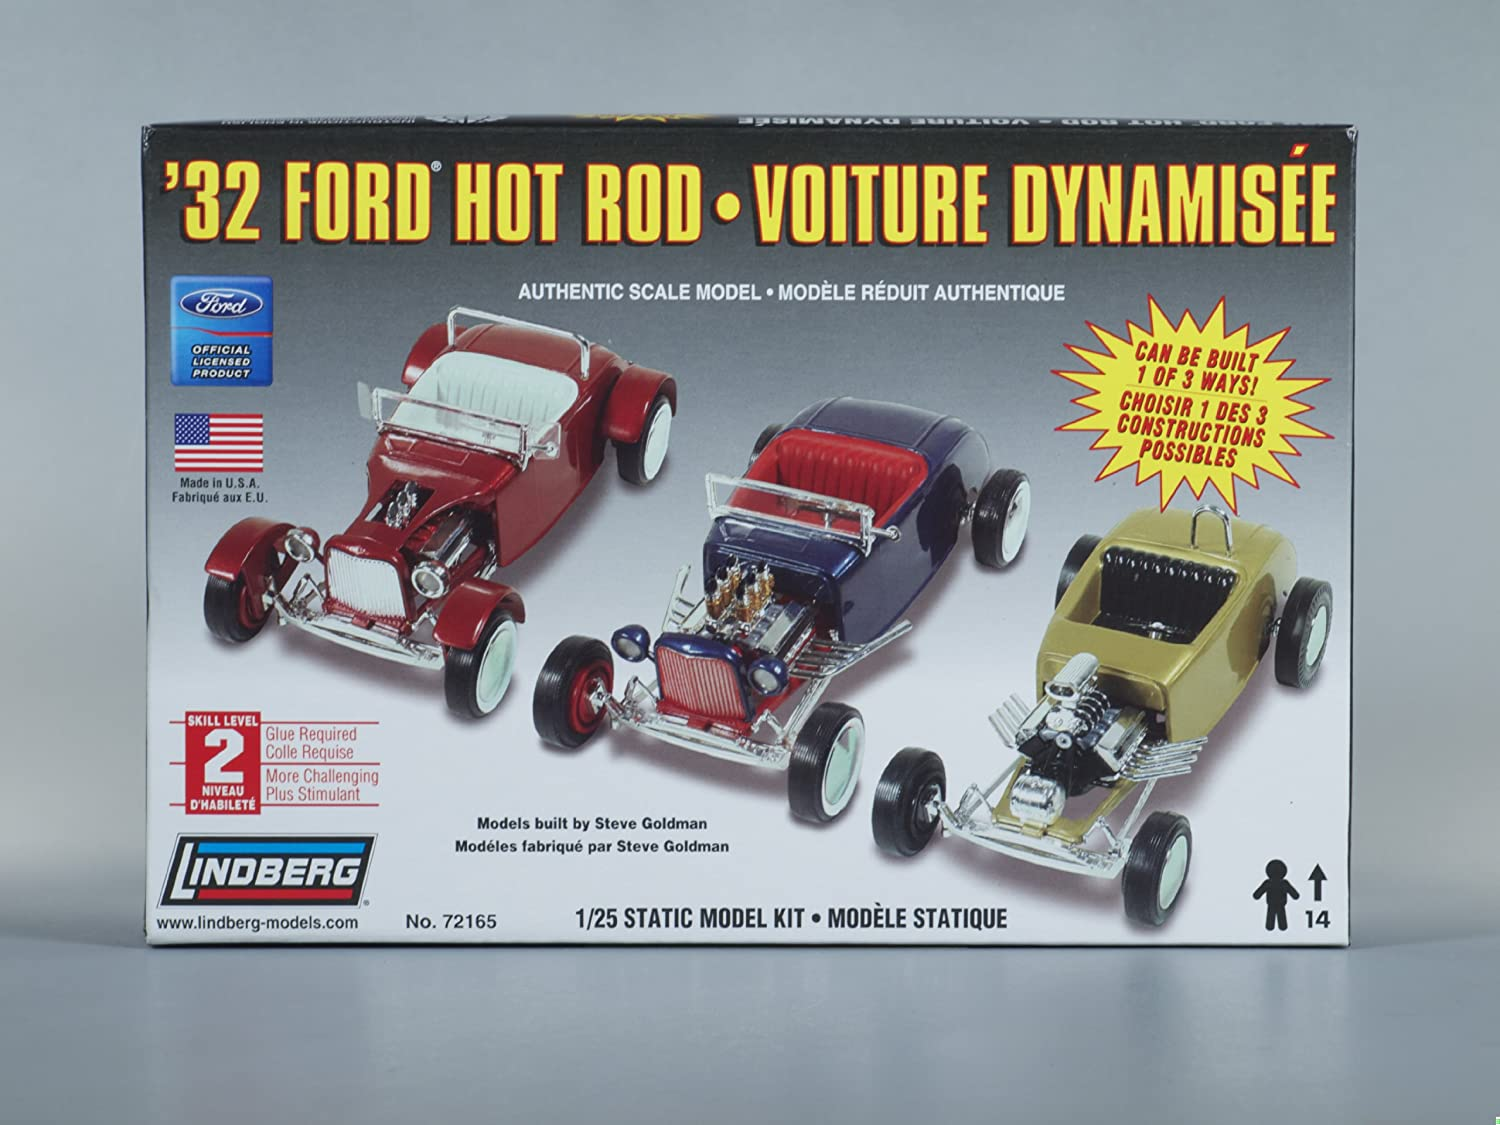 Amazon.com: Lindberg 32 Ford Hot Rod: Toys & Games